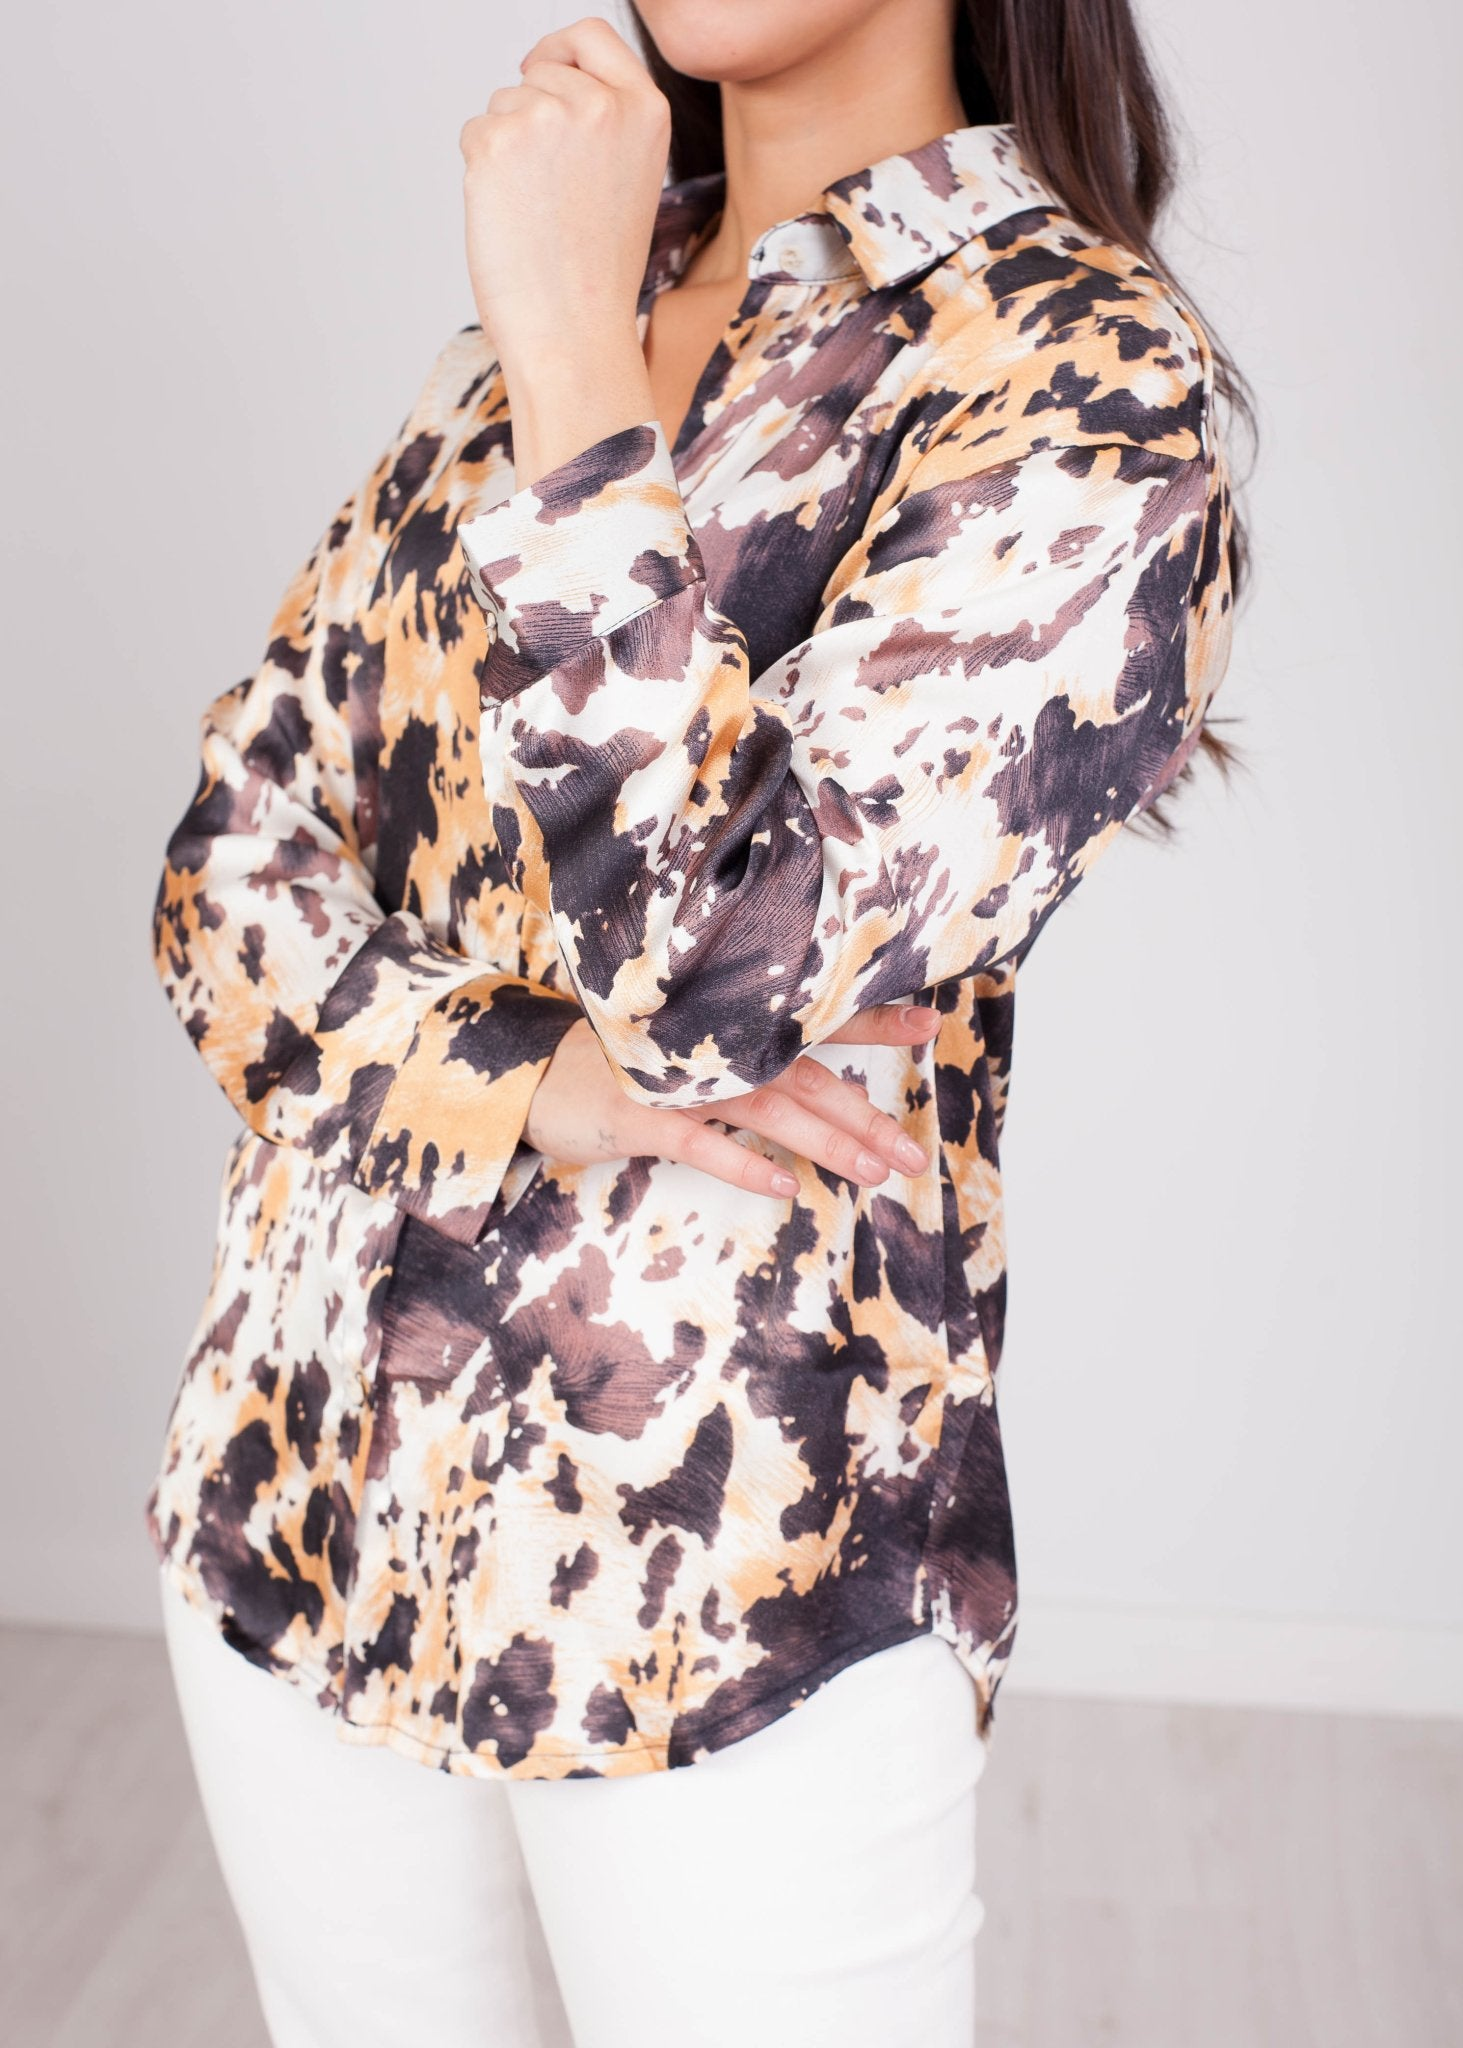 Emilia Neutral Abstract Print Blouse - The Walk in Wardrobe